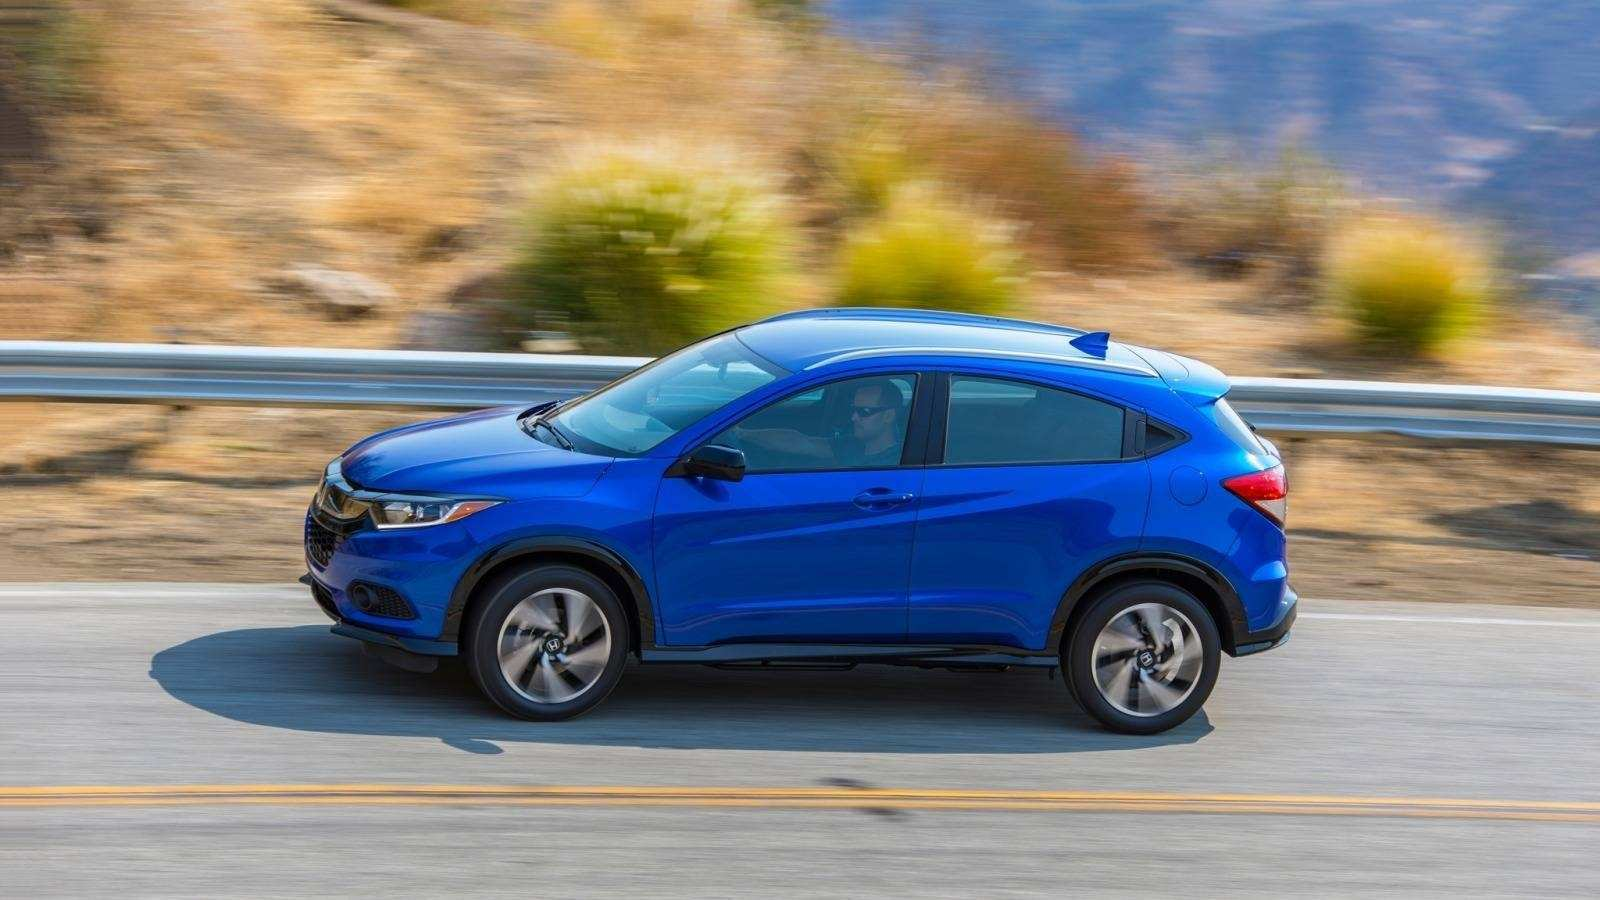 24 New The Honda 2019 Hrv Price Spy Shoot Redesign by The Honda 2019 Hrv Price Spy Shoot